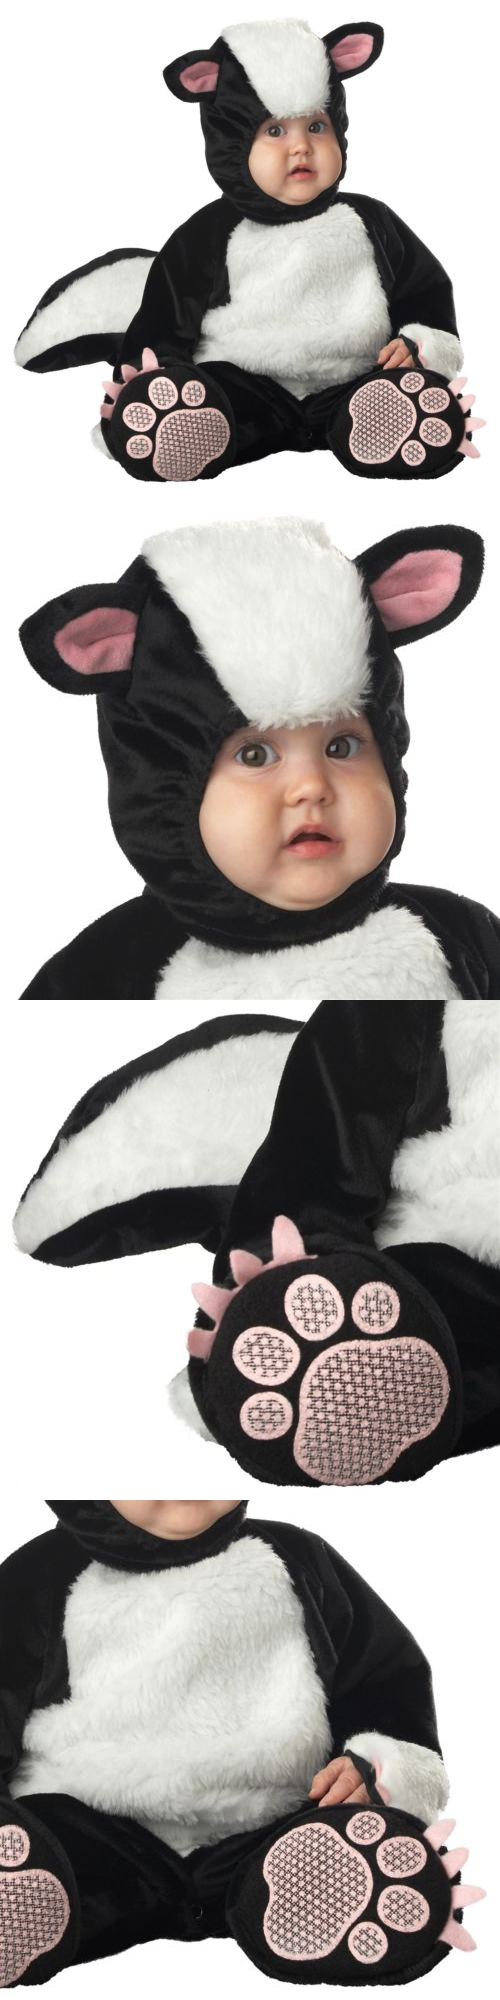 infants and toddlers 90635: skunk costume baby plush deluxe quality